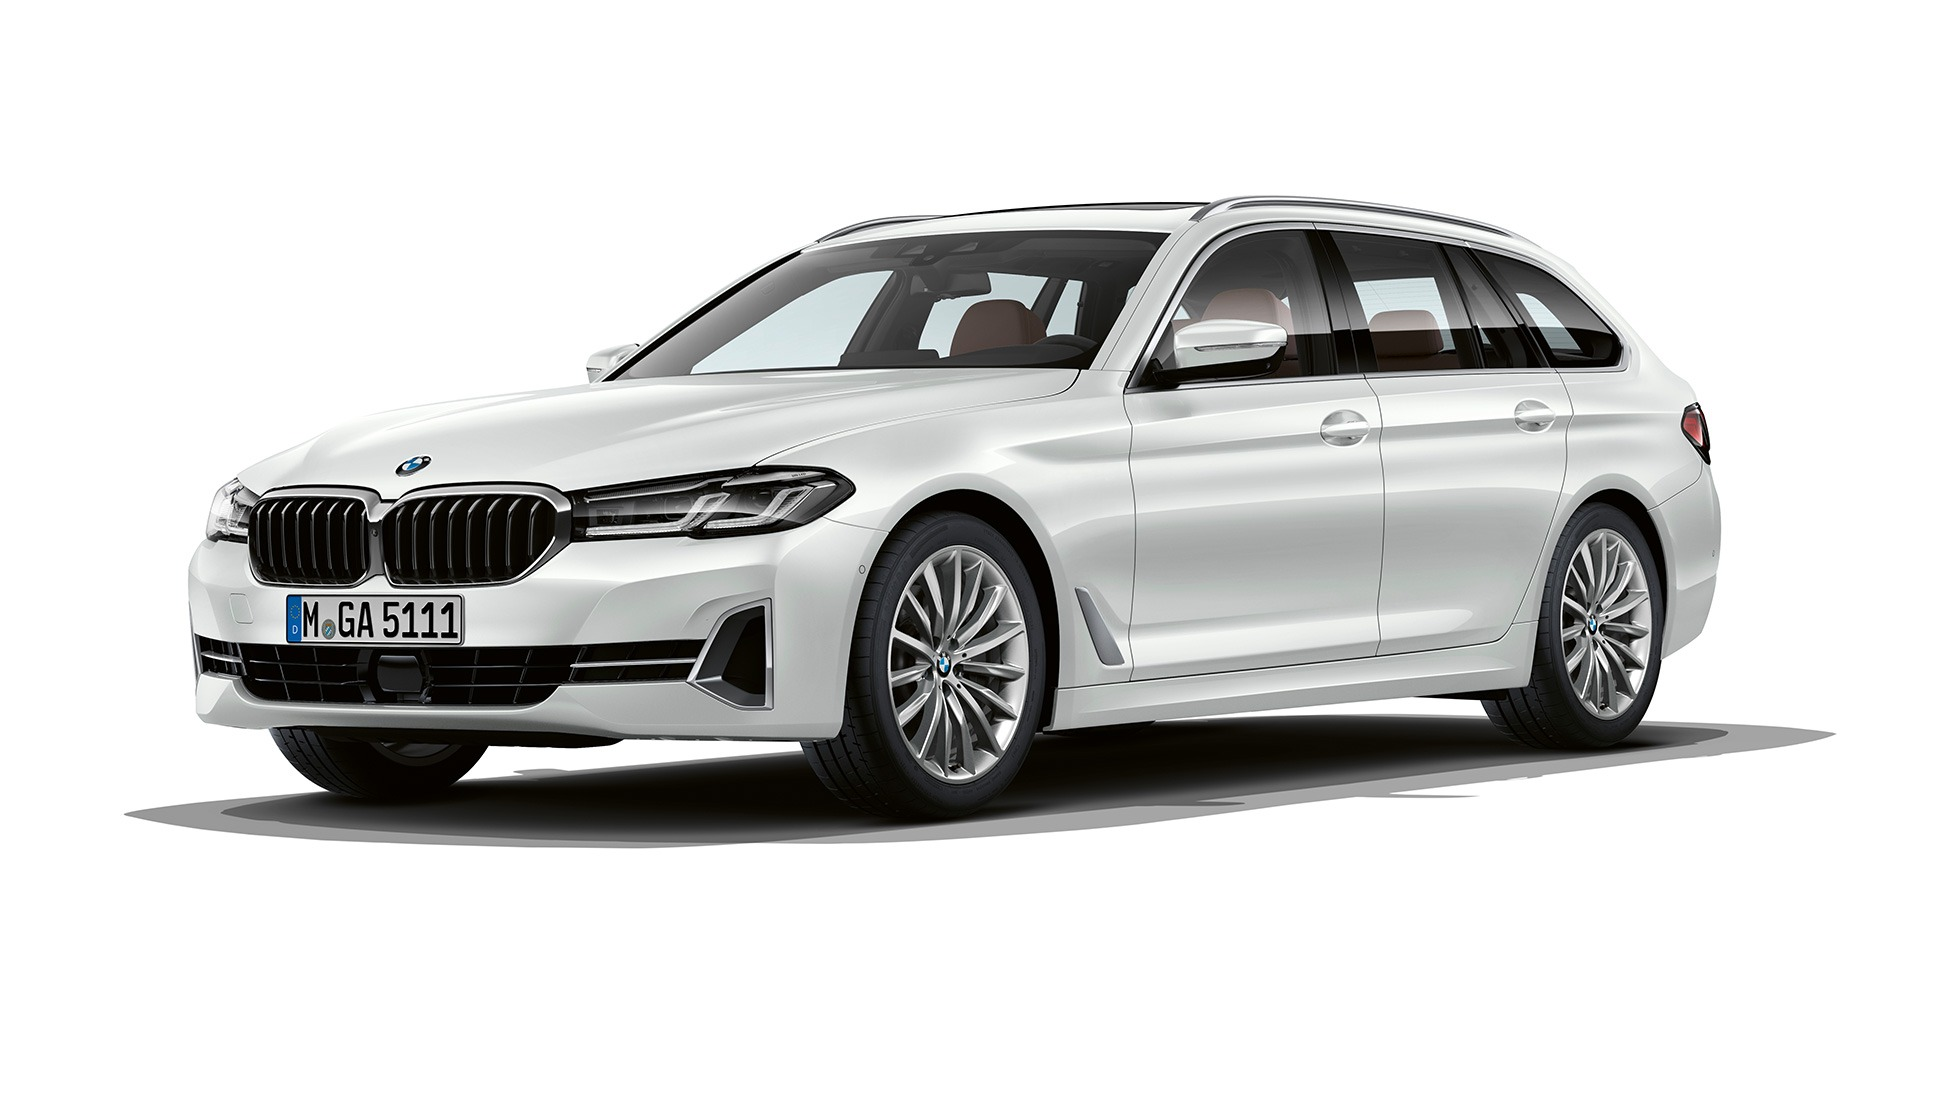 bmw-5-series-touring-models-and-equipment-lines-02-01